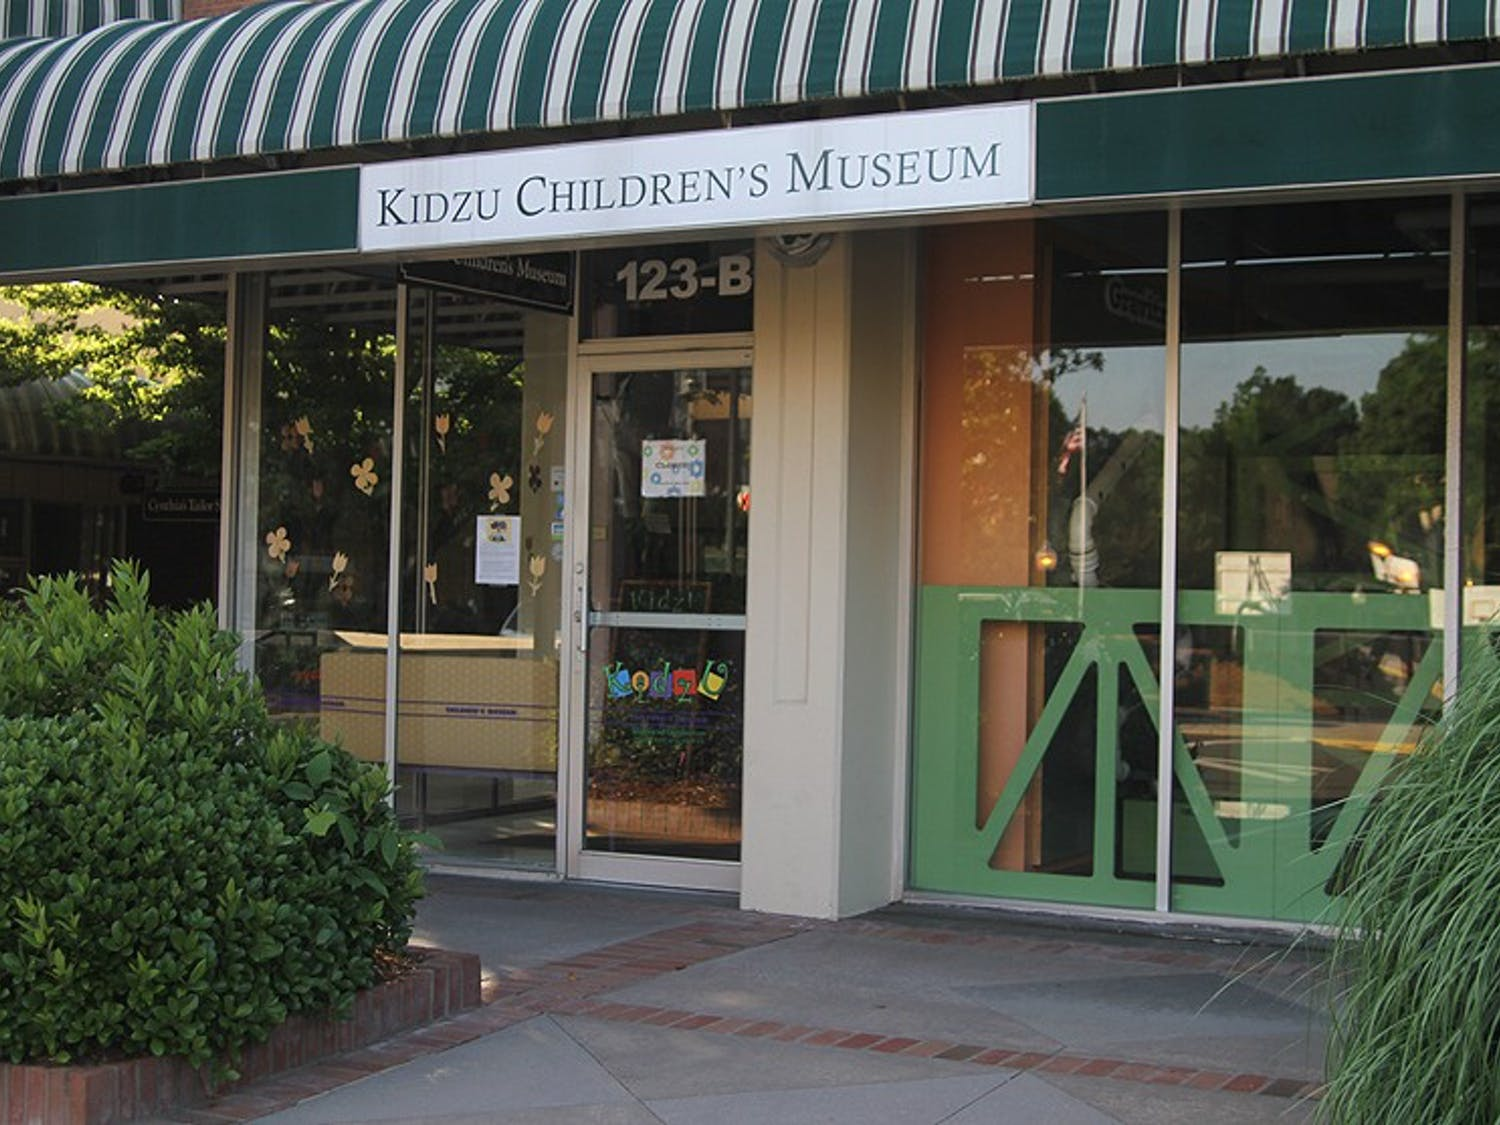 Kidzu Children's Museum is planning to open a new location in the Wallace Deck by 2016.